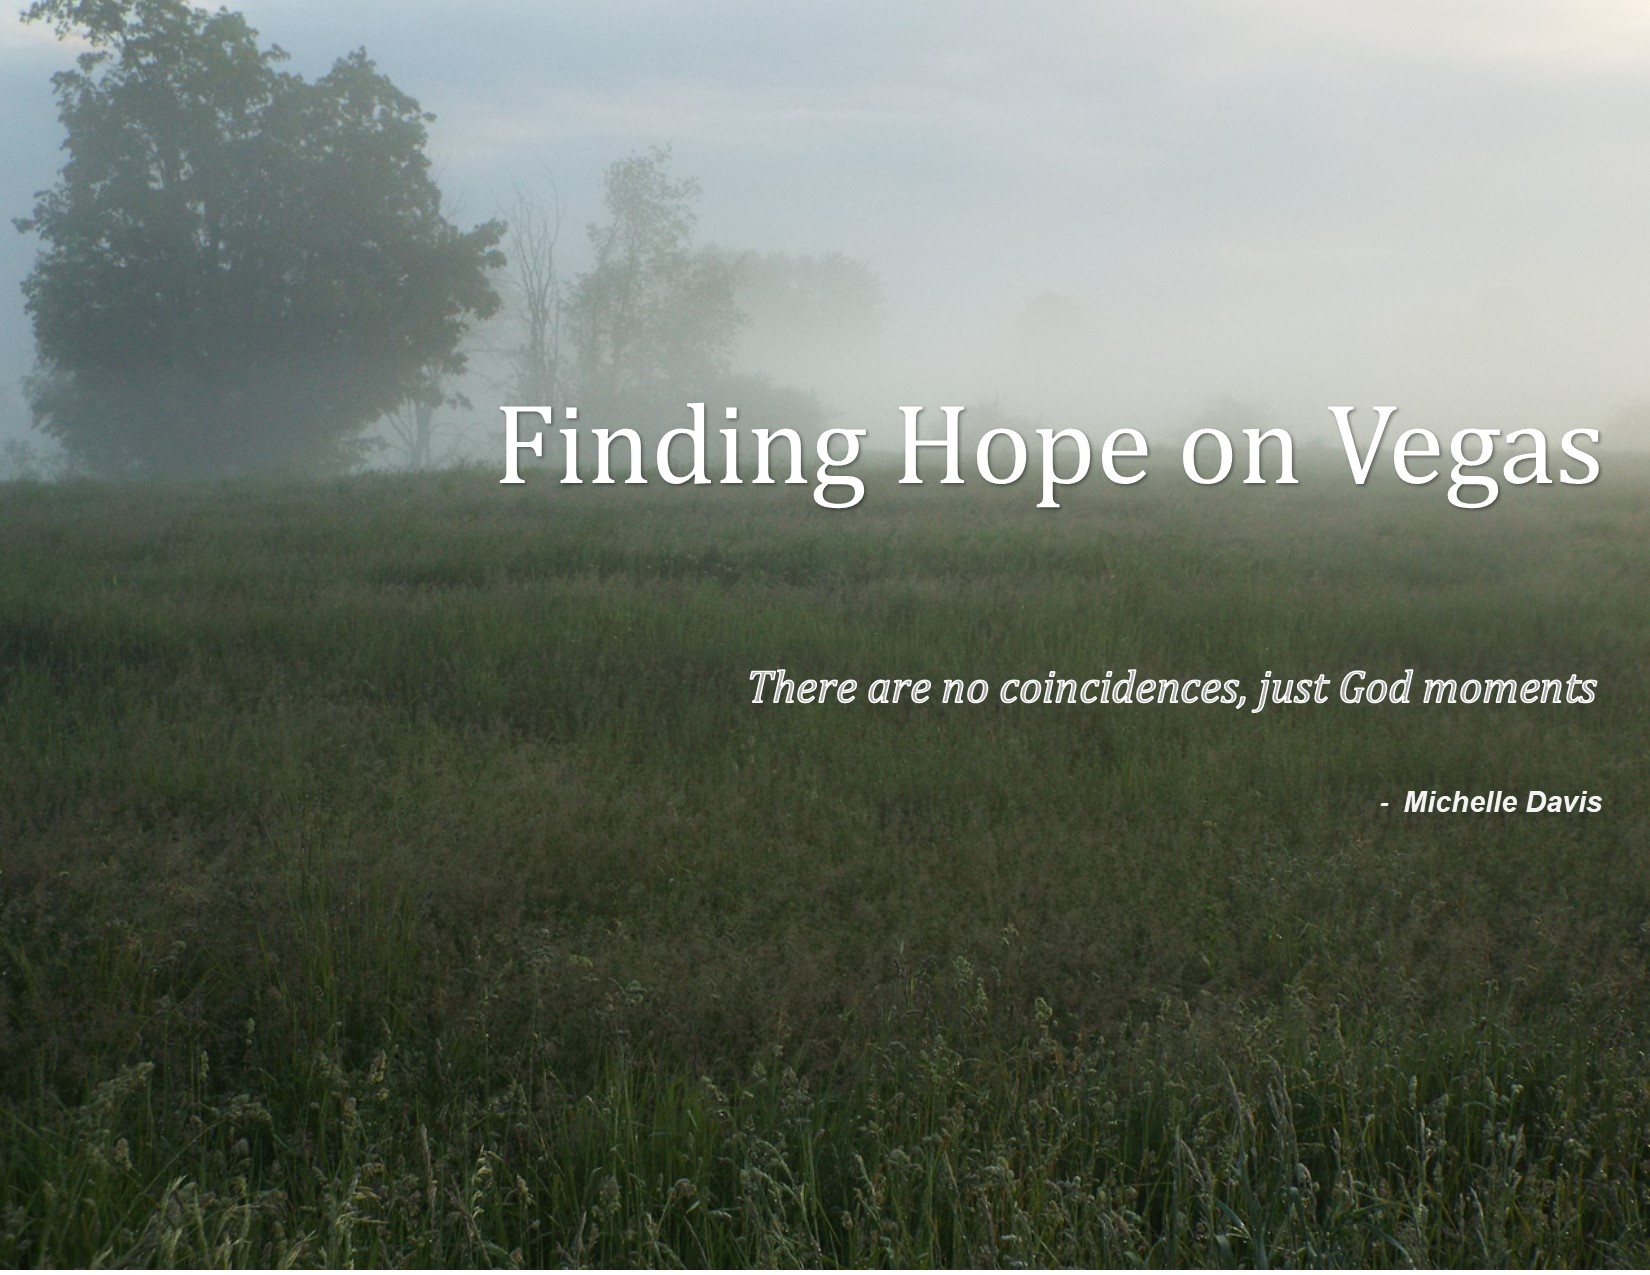 FINDING HOPE ON VEGAS POSTER 1